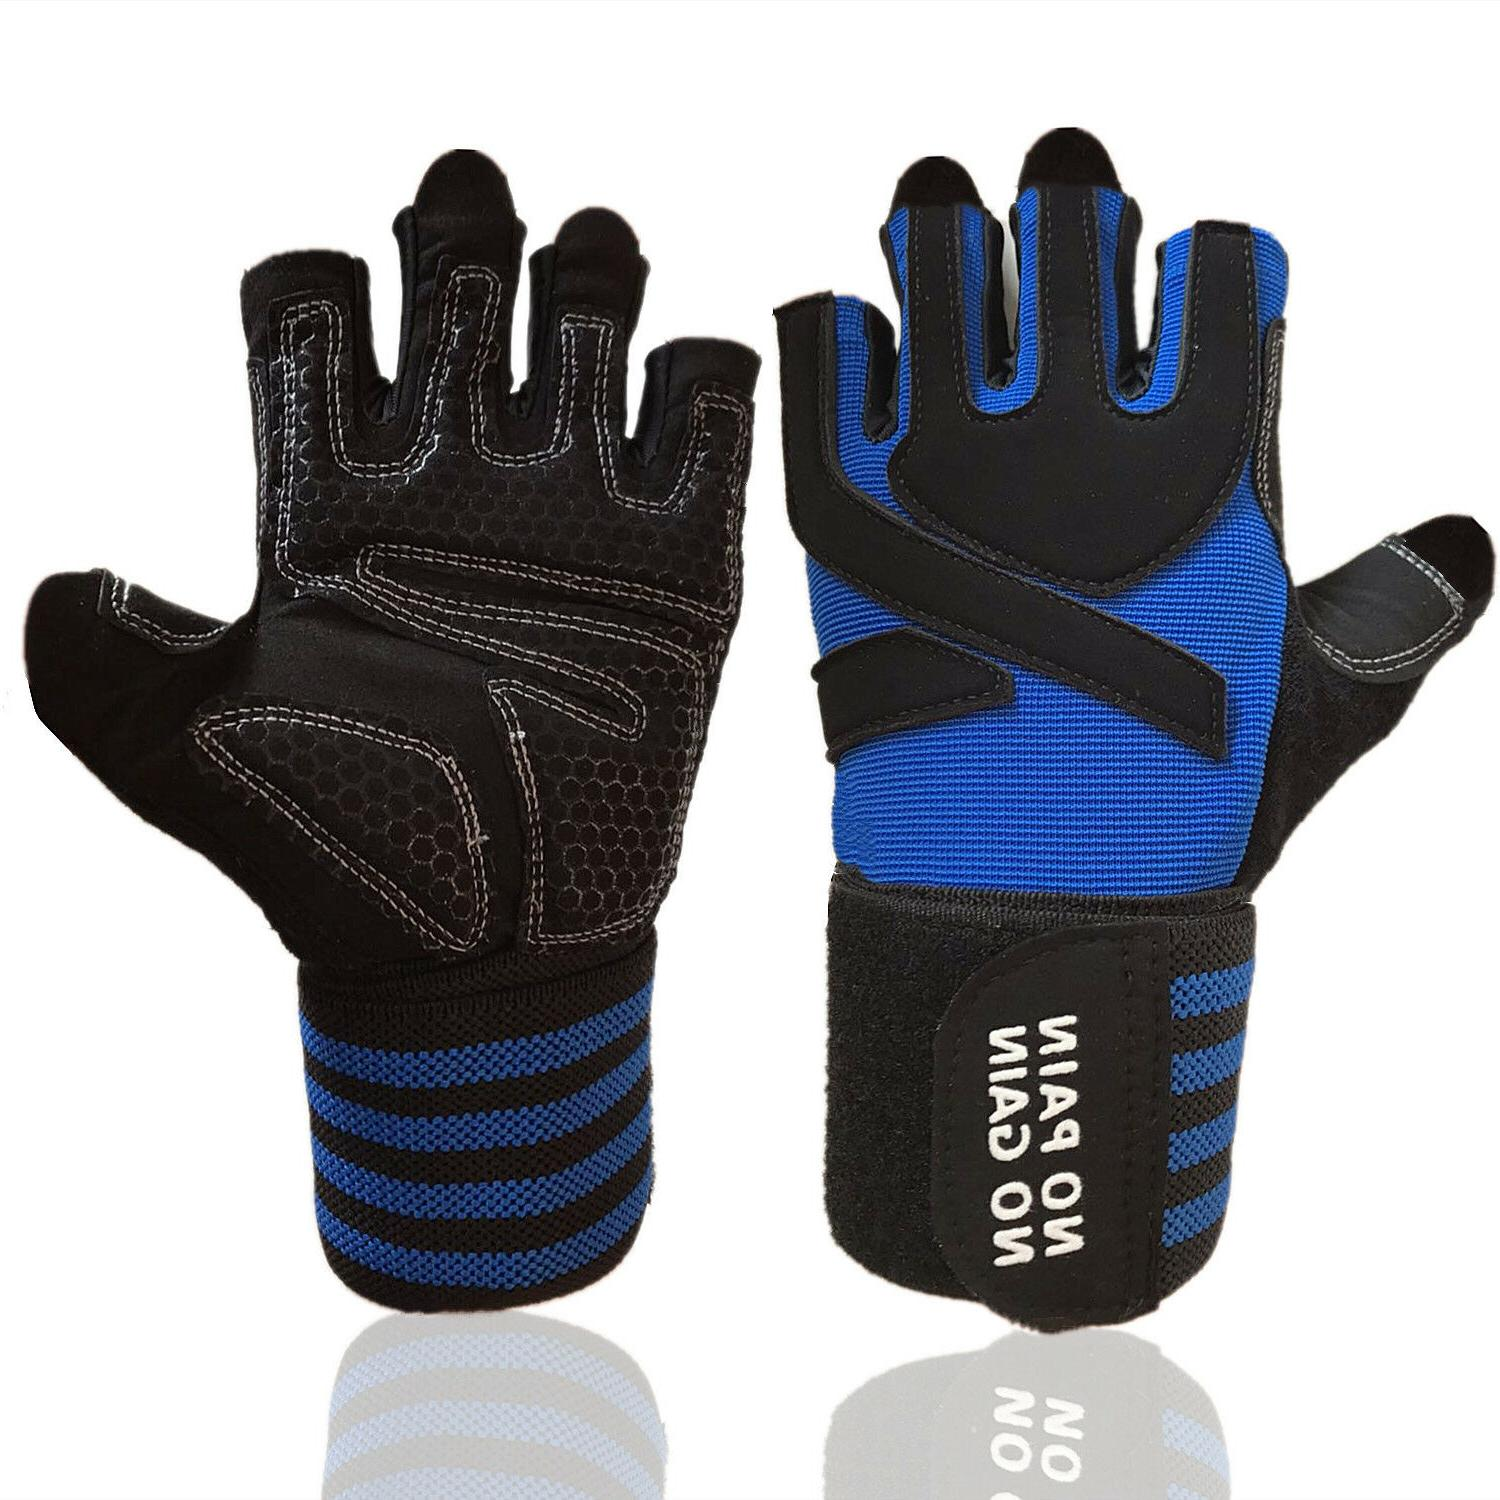 gym gloves wrist wrap weight lifting sports